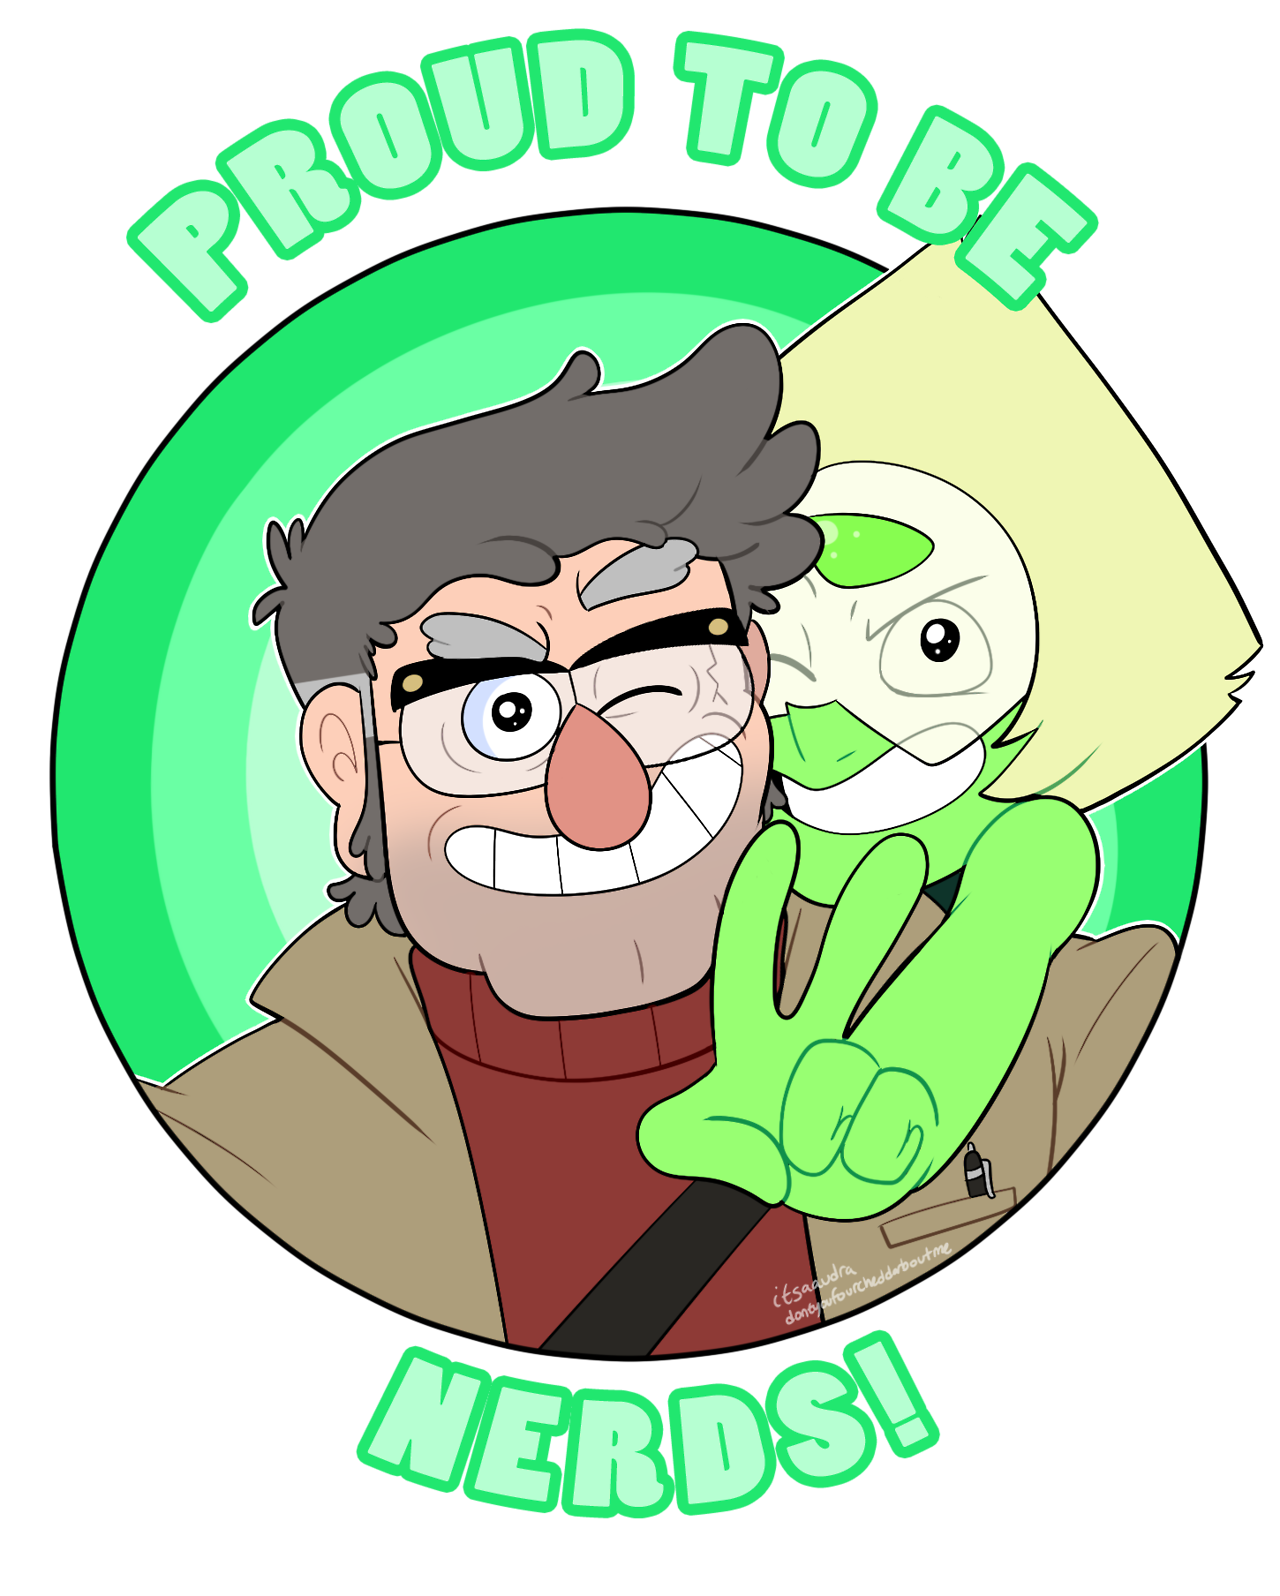 this is somethin' old i did for my old Steven Universe/Gravity Falls crossover, Grunkle Universe. you can get this as a sticker or on a shirt if you'd like